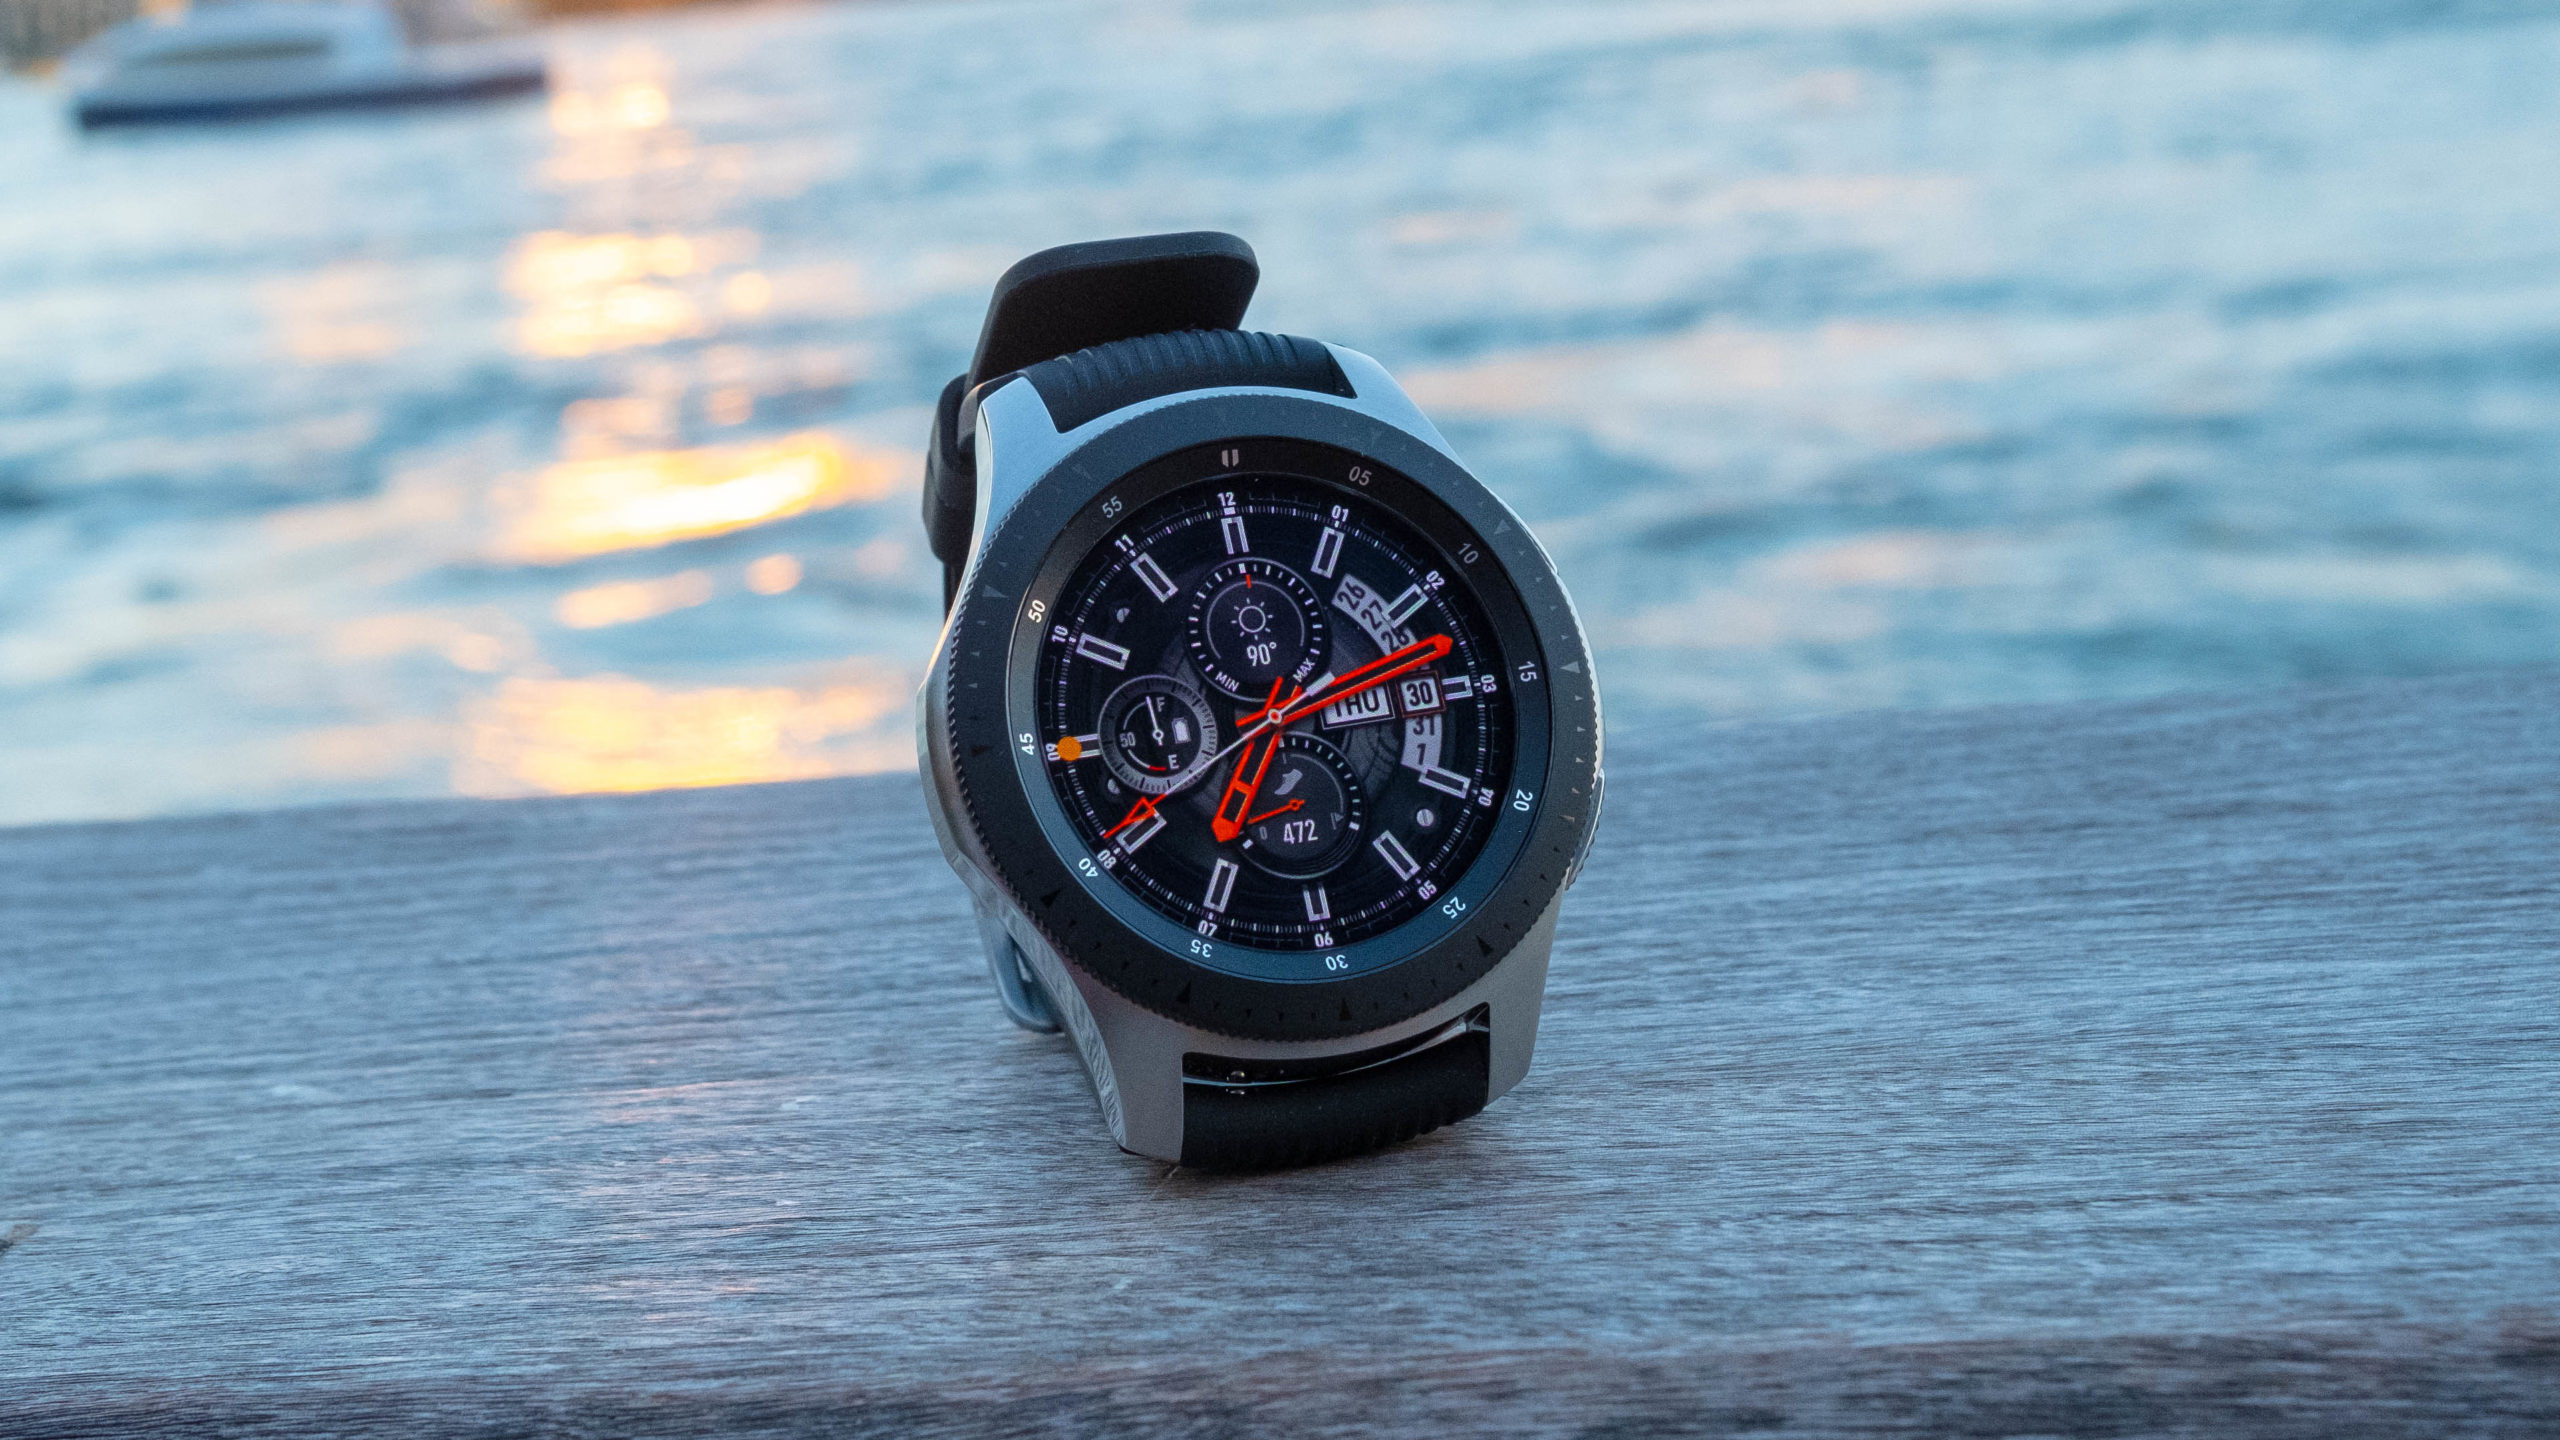 Samsung Galaxy Watch 2 may be known as the Galaxy Watch 3